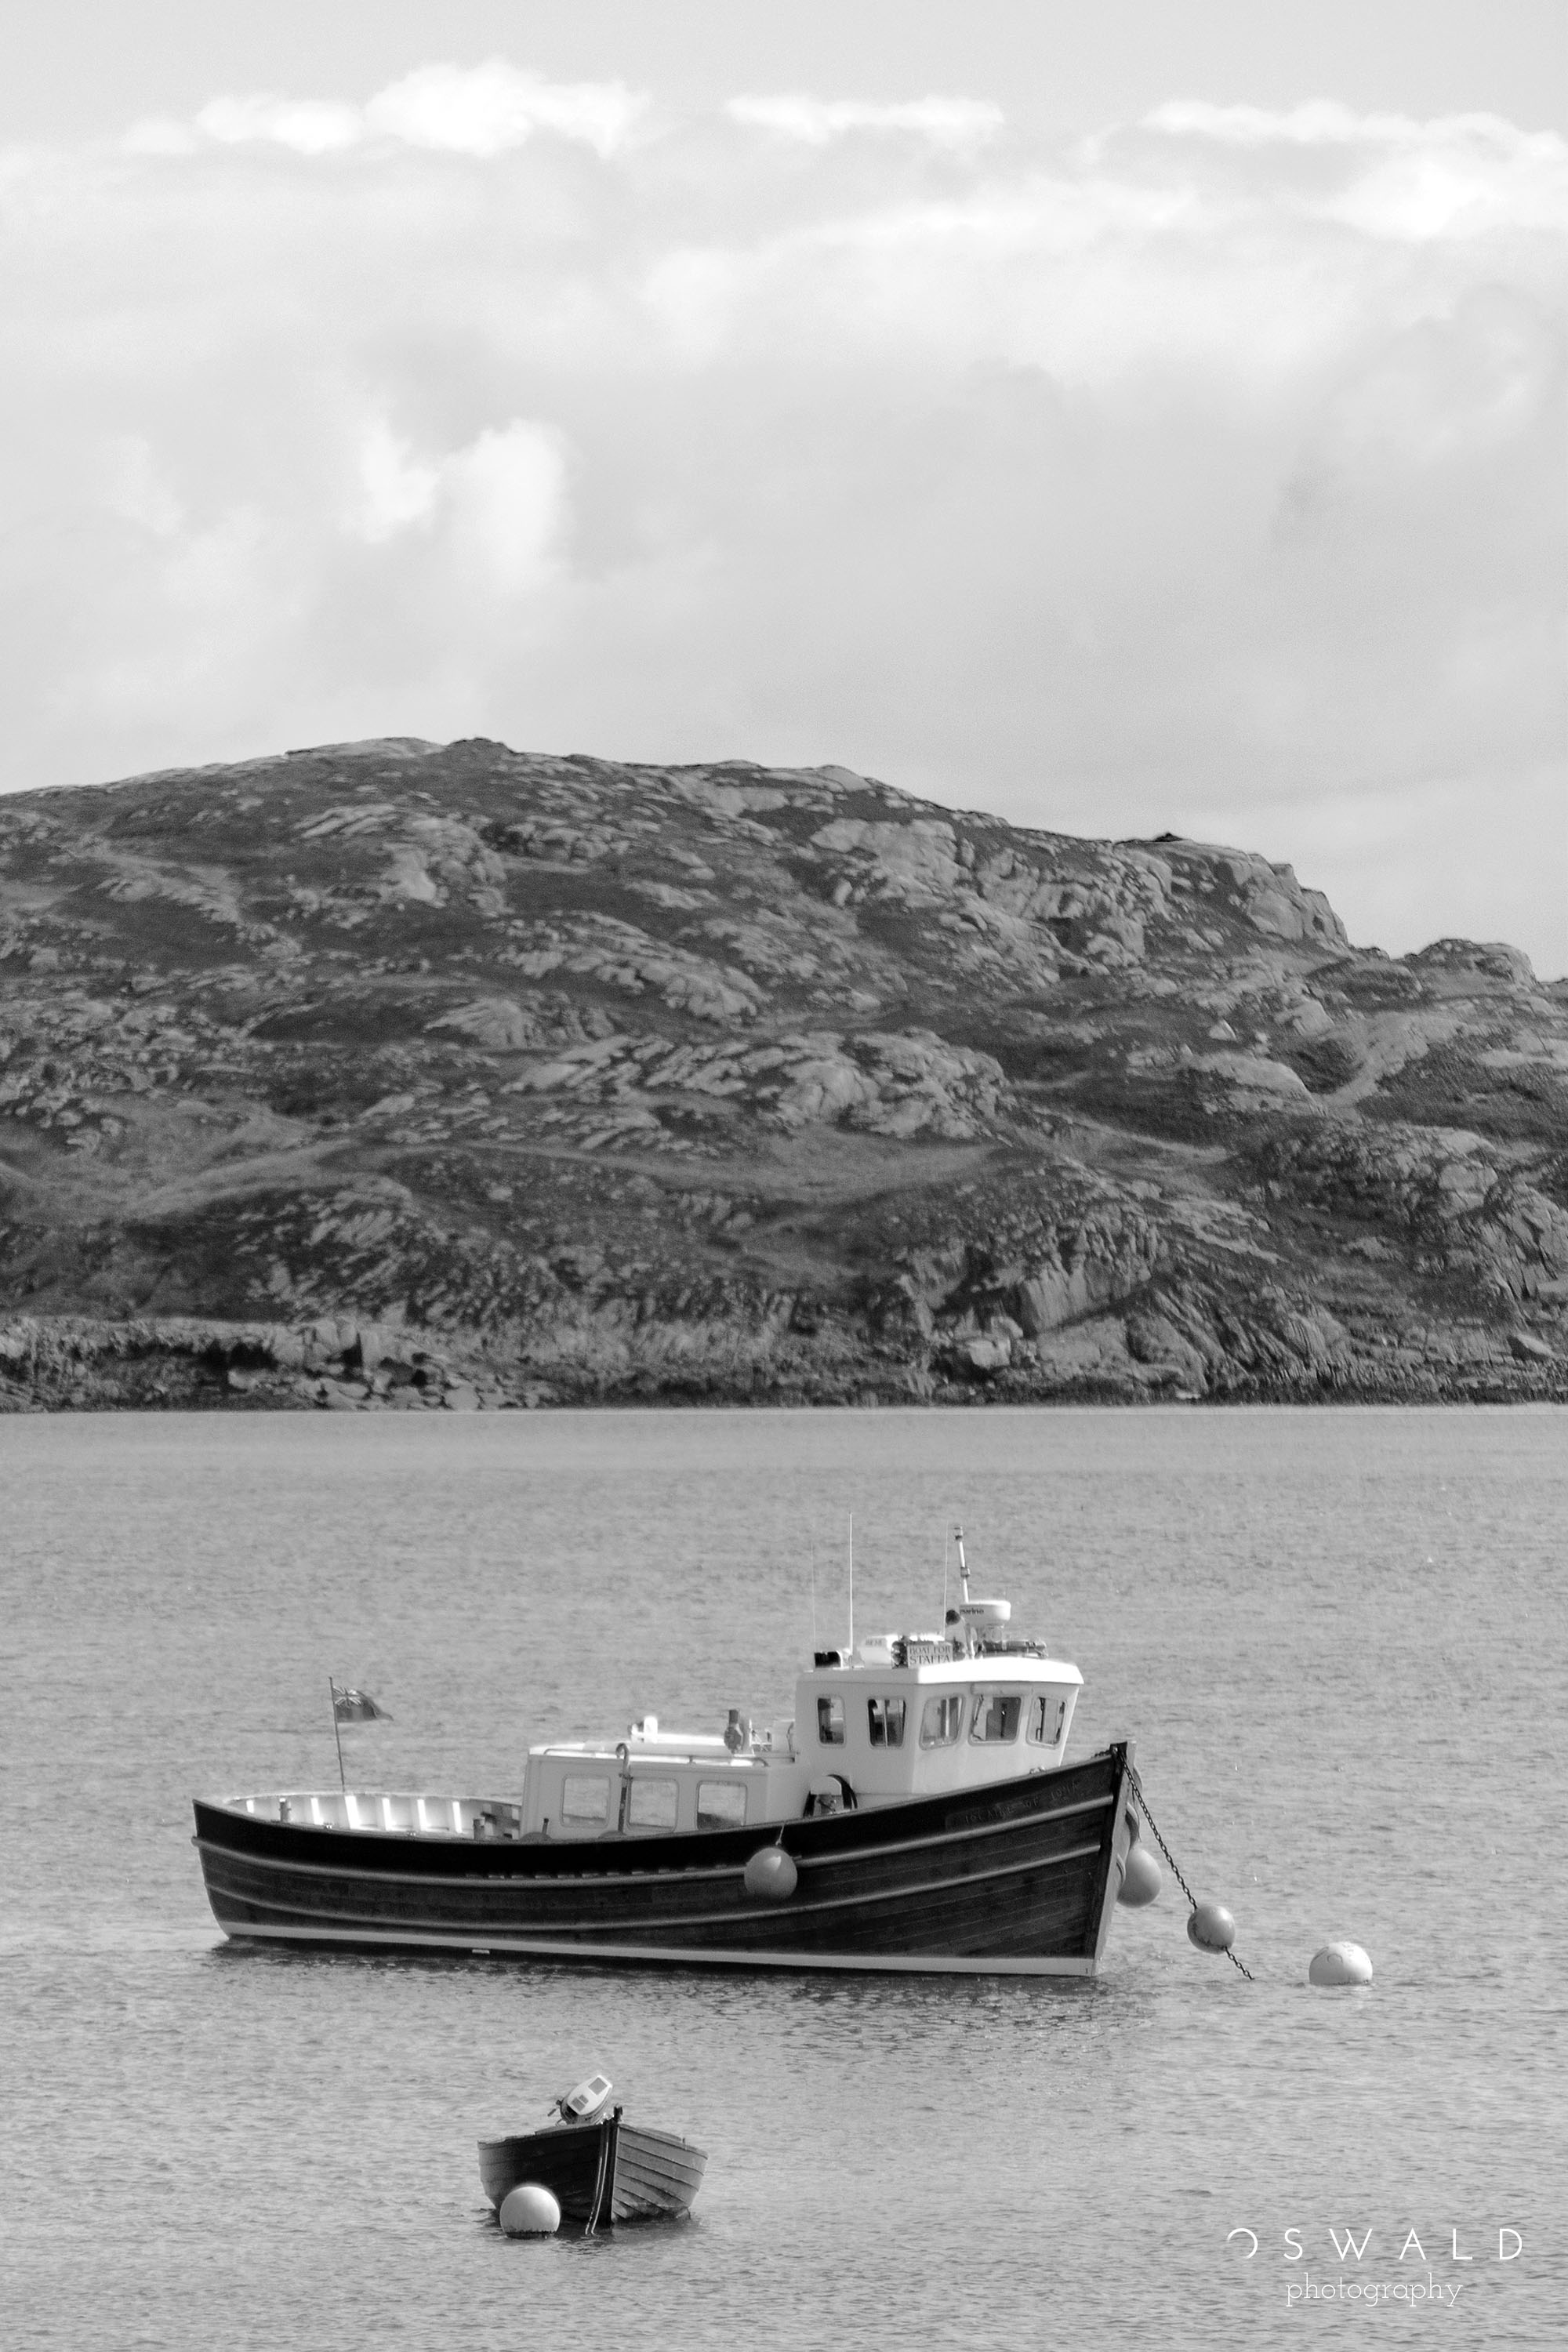 A monochrome photo of a boat and its dinghy floating in calm waters between the coast of Mull and Iona in Scotland.